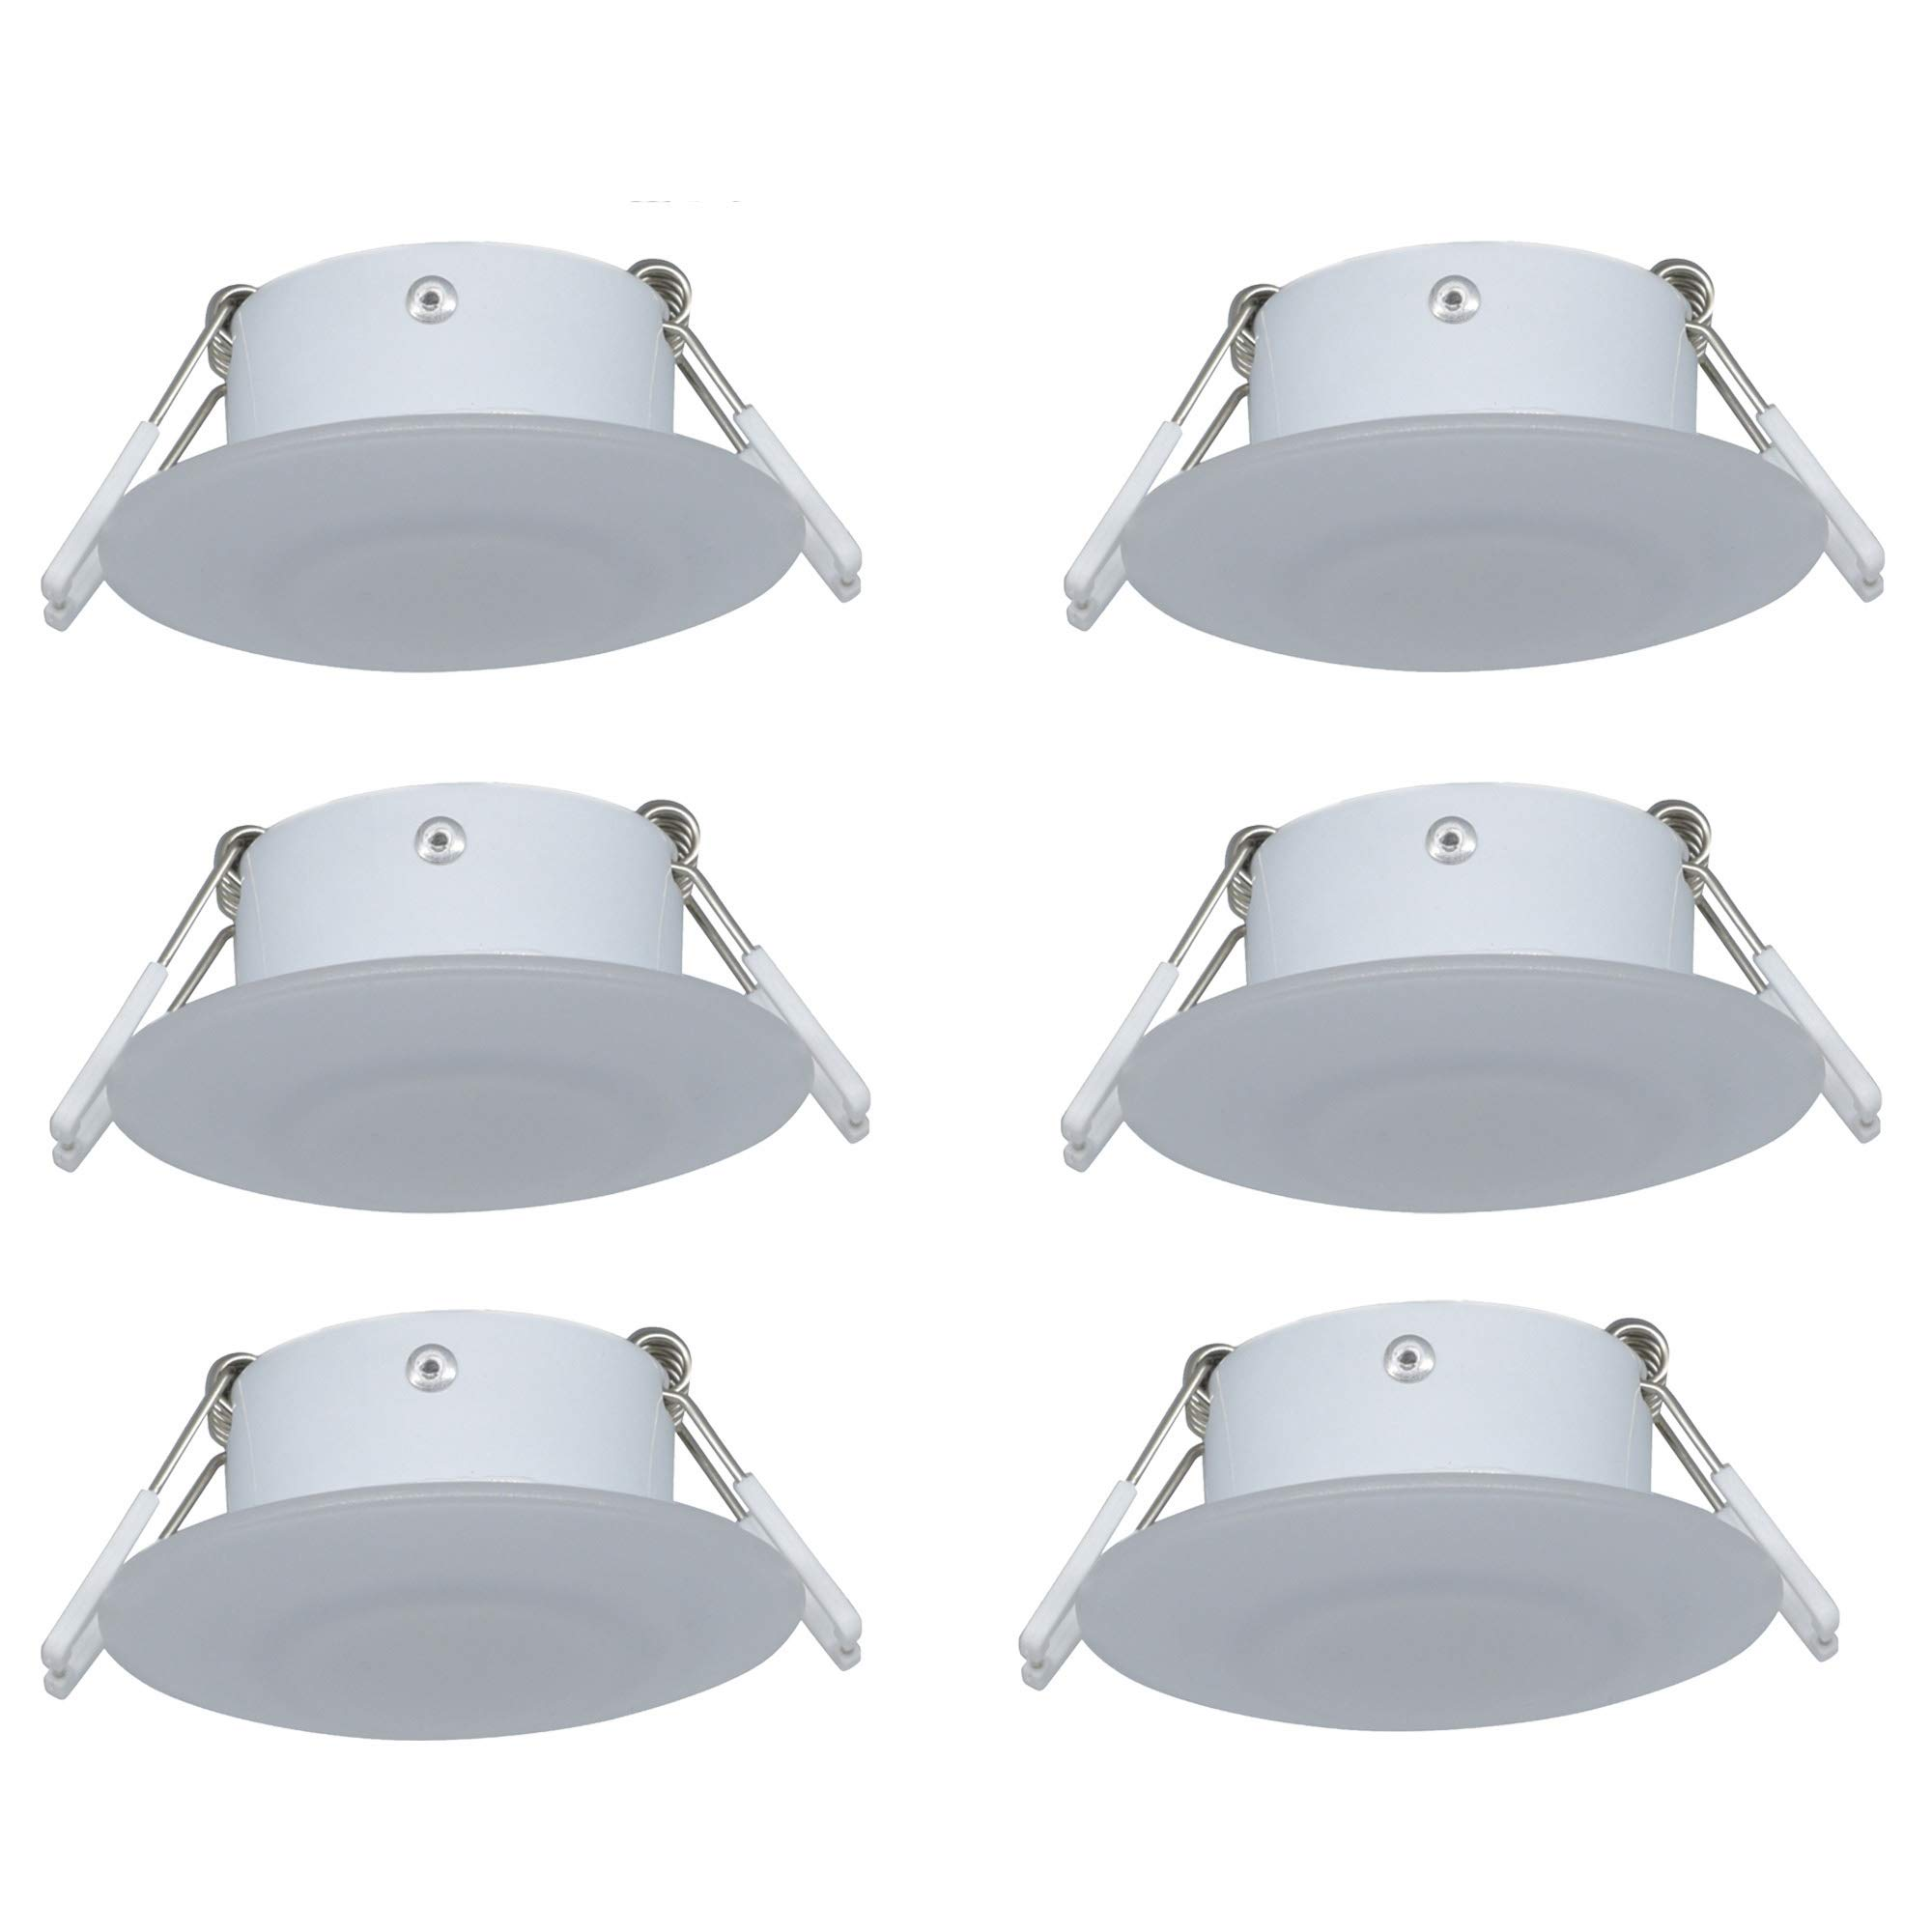 Facon 3Inch LED RV Puck Light Full Aluminum Recessed Mount Down Light 12V 3W 210Lumens by Facon